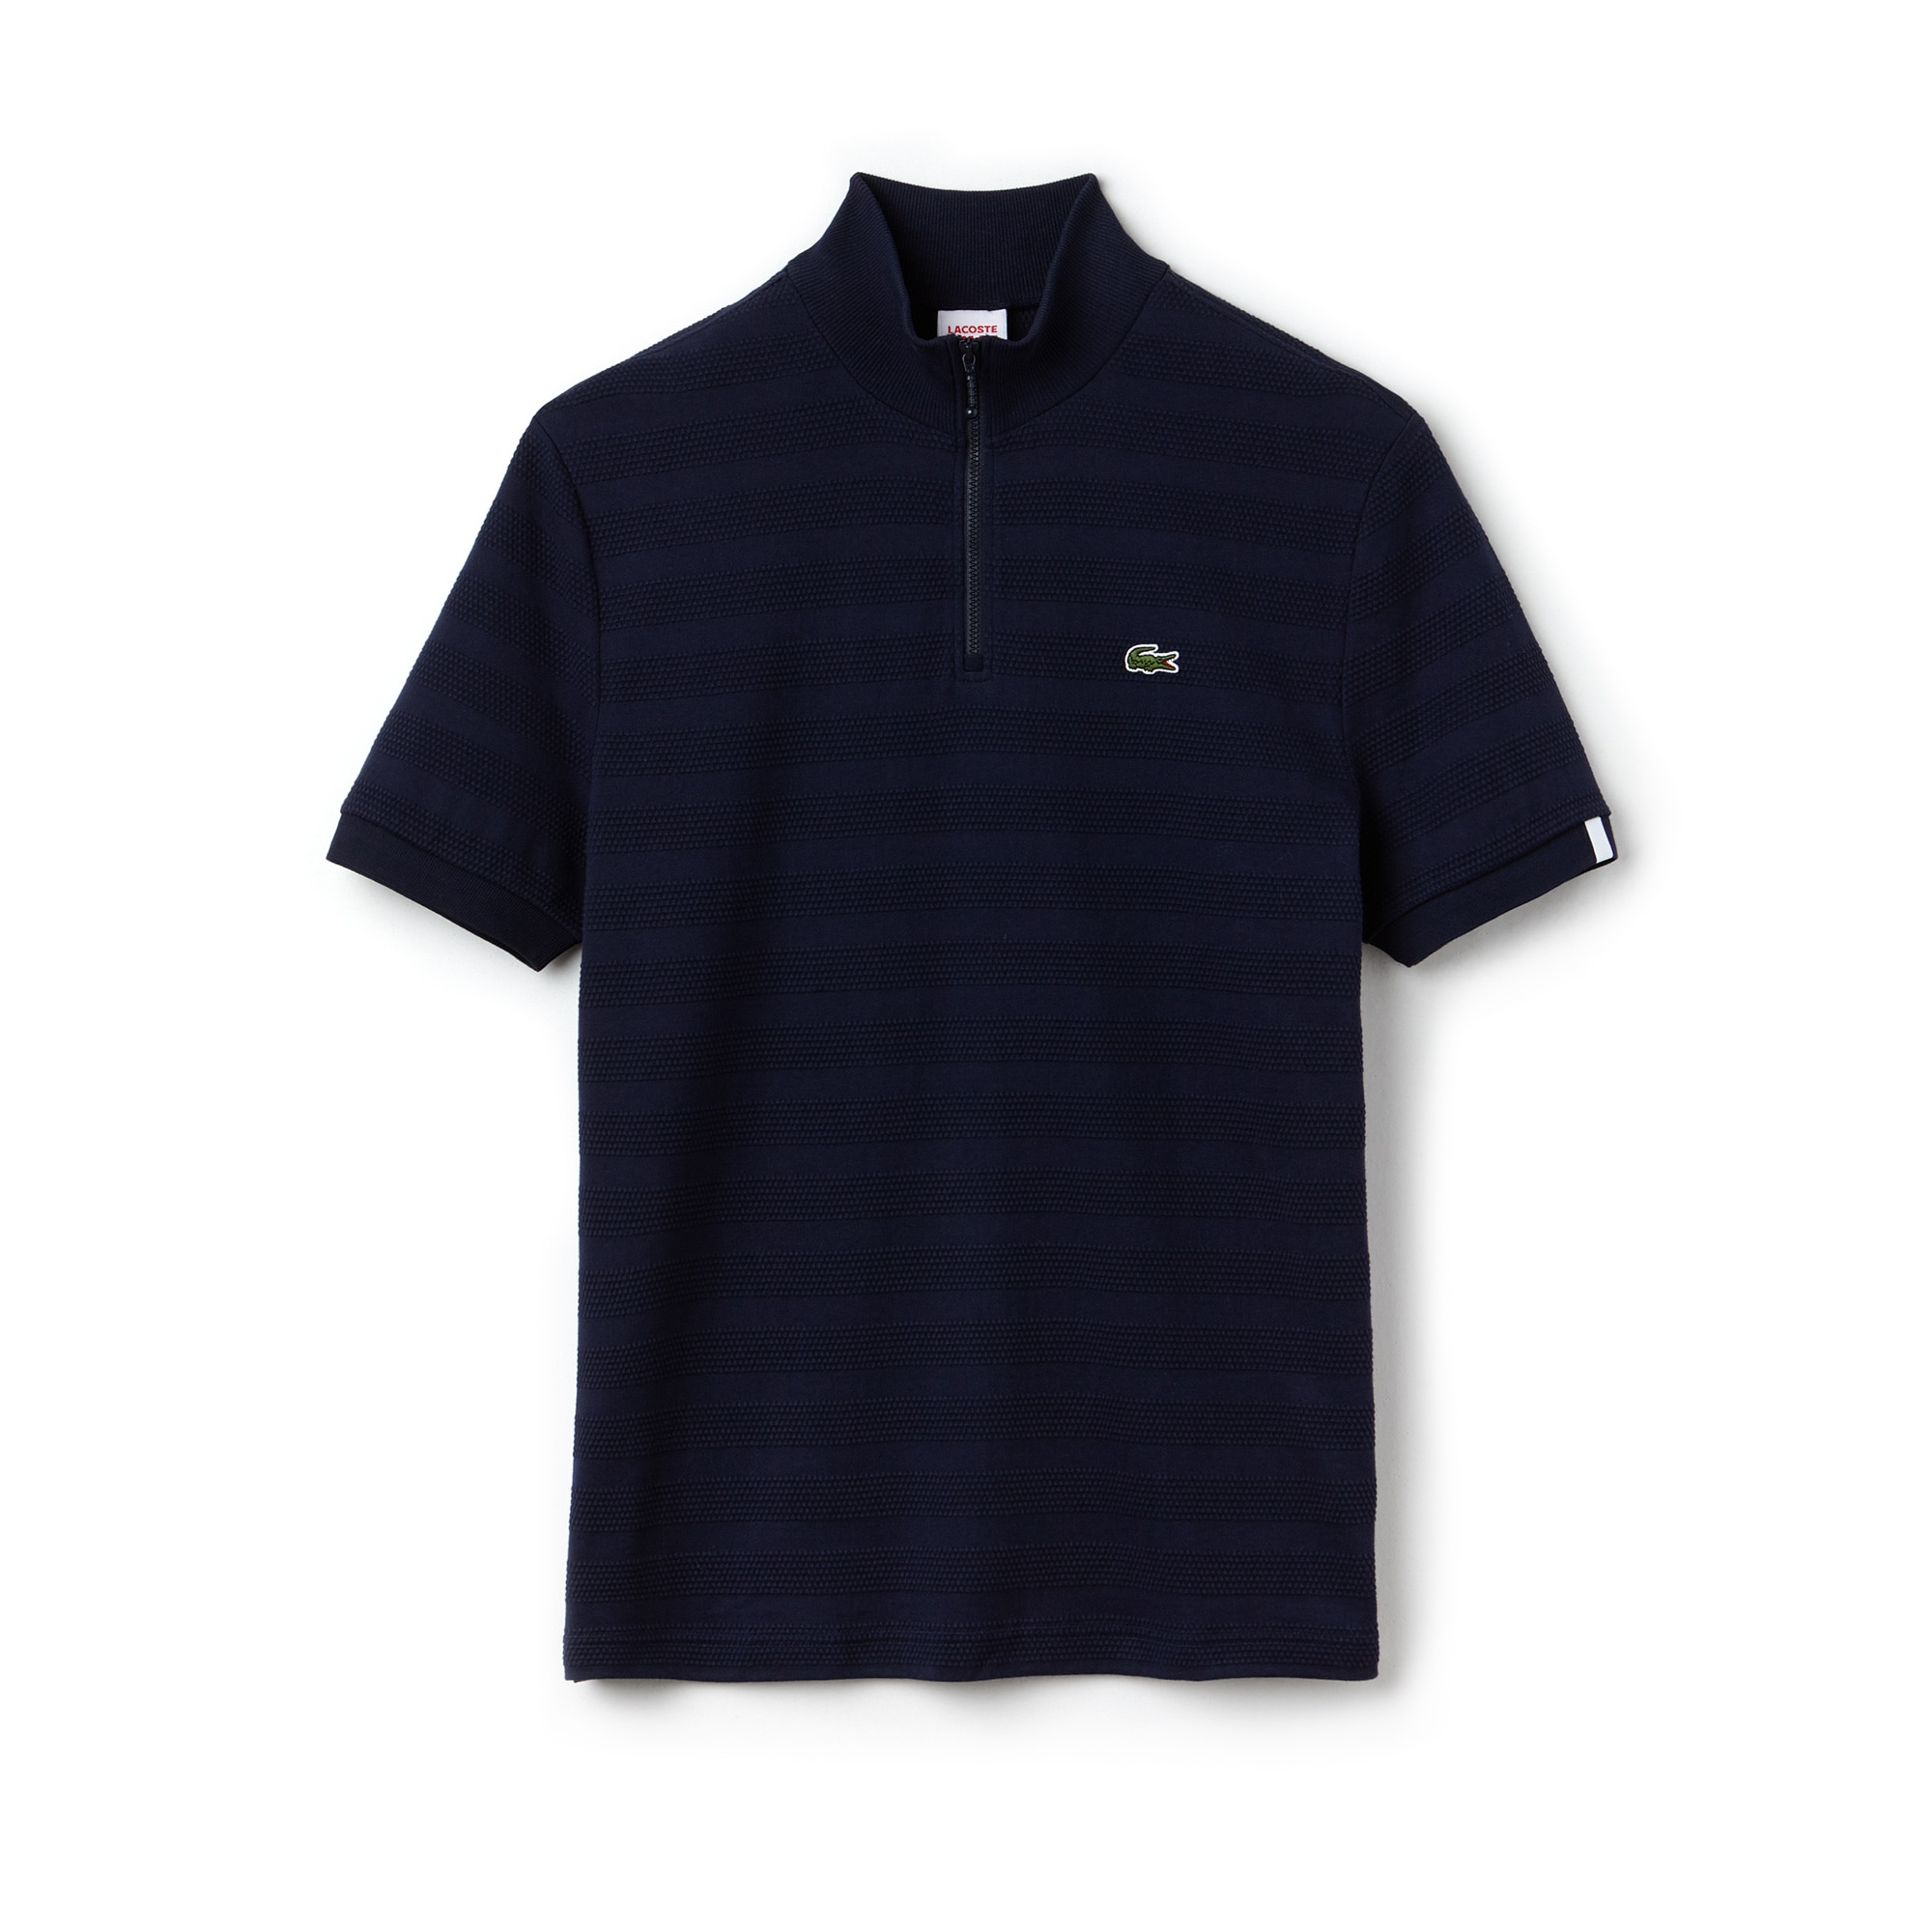 Men's Lacoste LIVE Slim Fit Zip Striped Honeycomb Jersey Polo